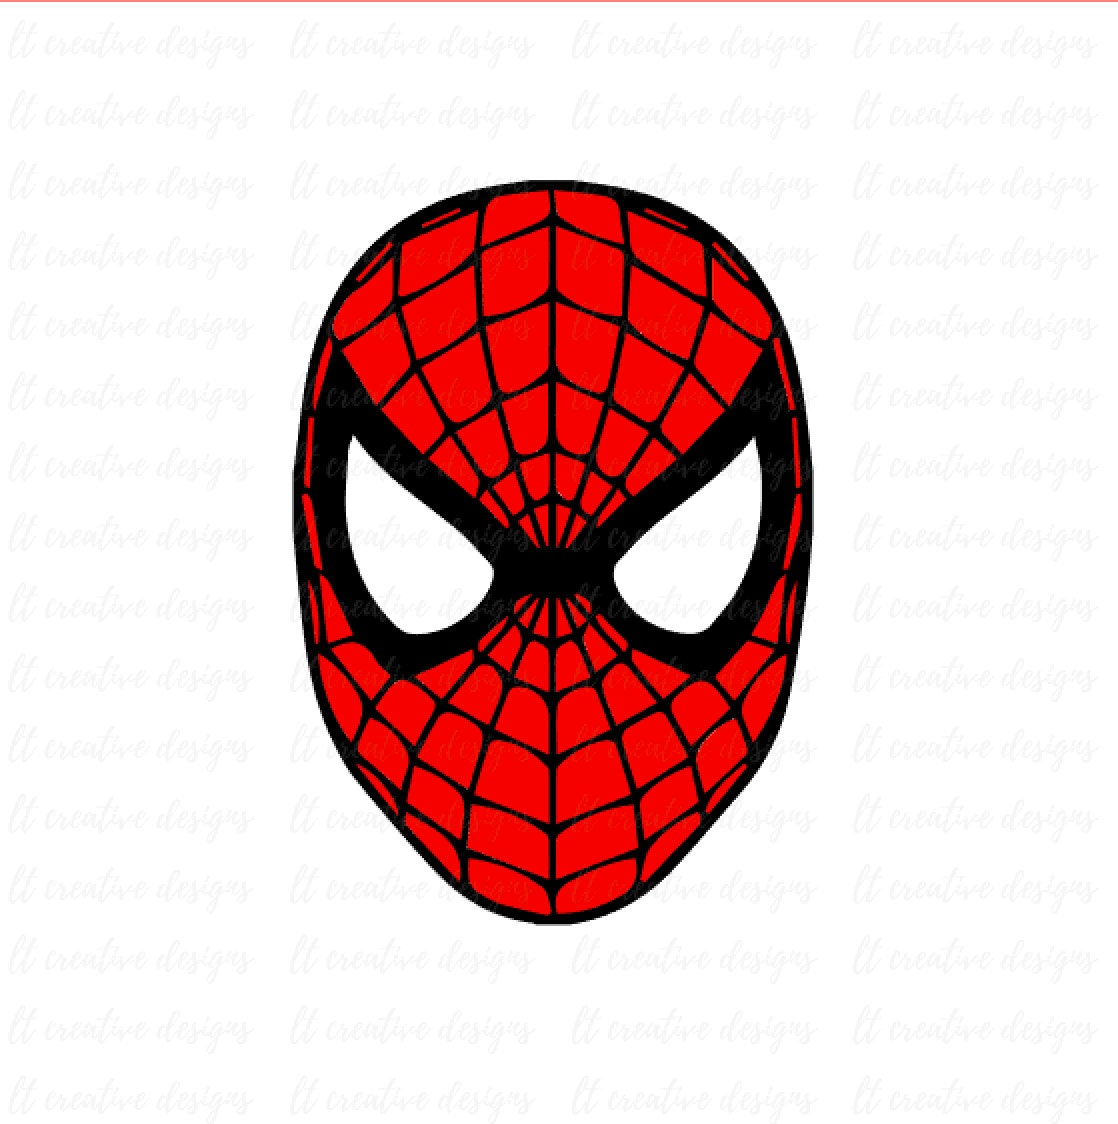 spiderman svg spiderman face svg silhouette cut files rh etsy com Spider-Man Face Paint Spider-Man Face Painting Ideas